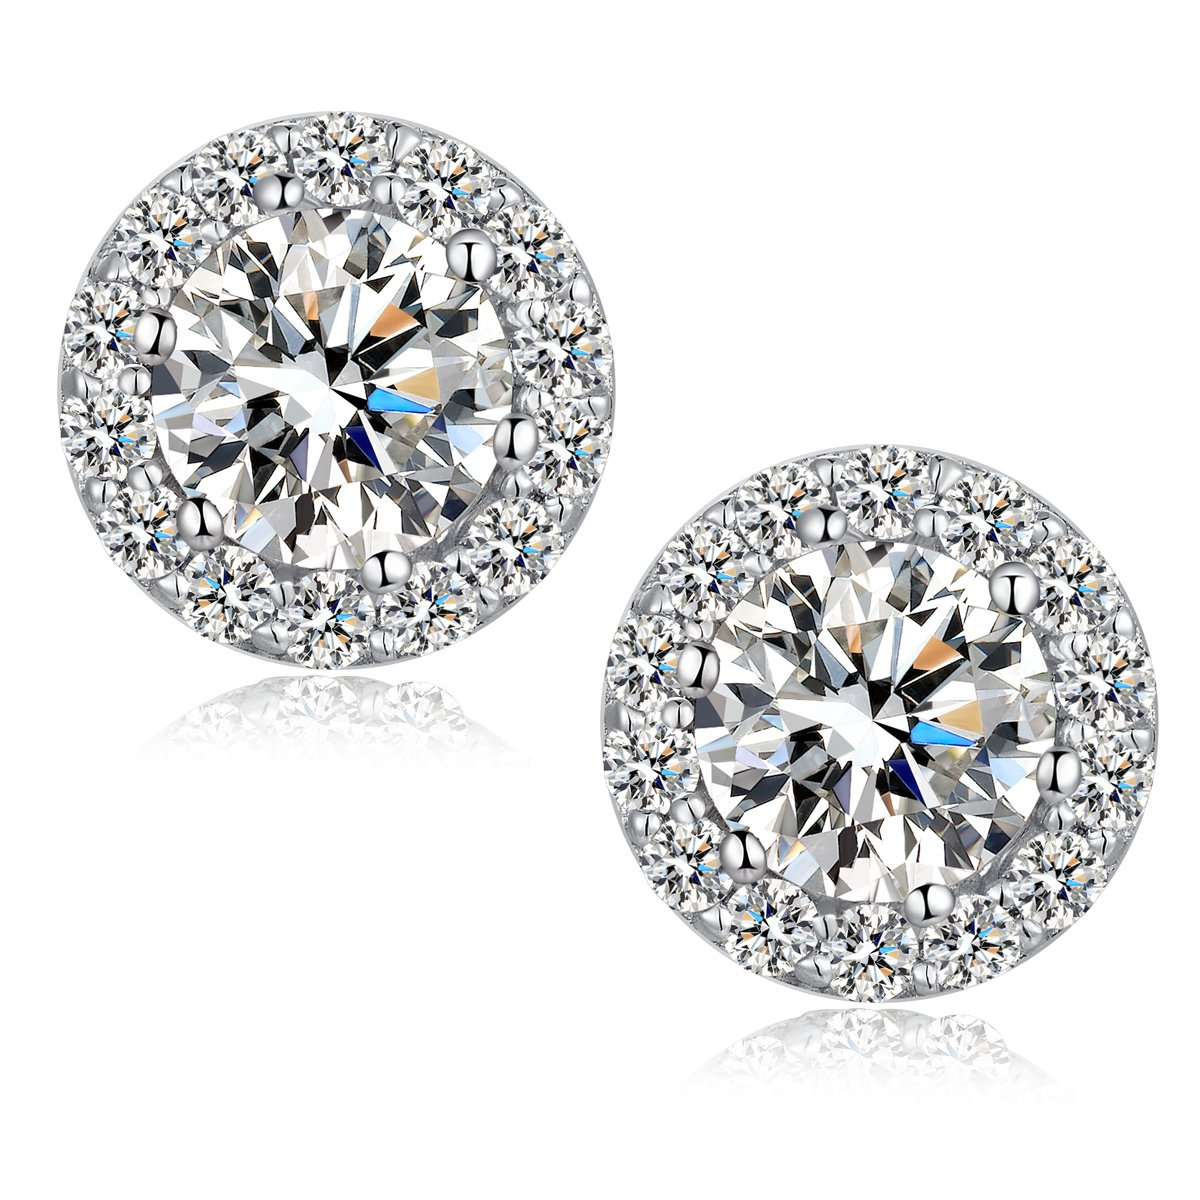 Get Quotations Halo Stud Earrings 18k White Gold Plated Round Shape Sterling Silver